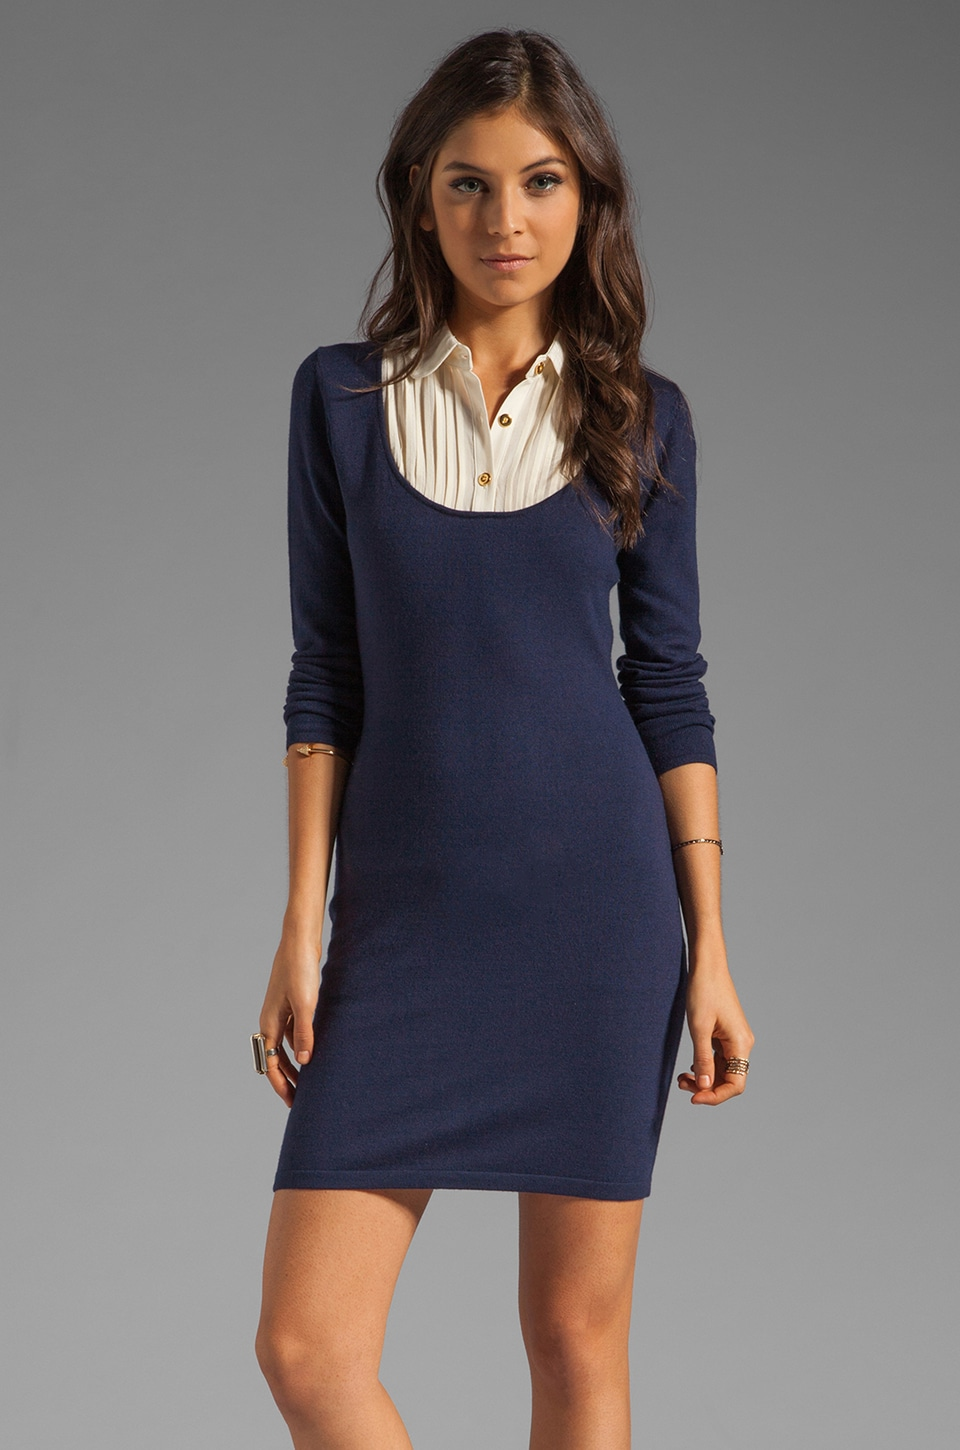 Alice by Temperley Dorado Dress in Navy/Cream